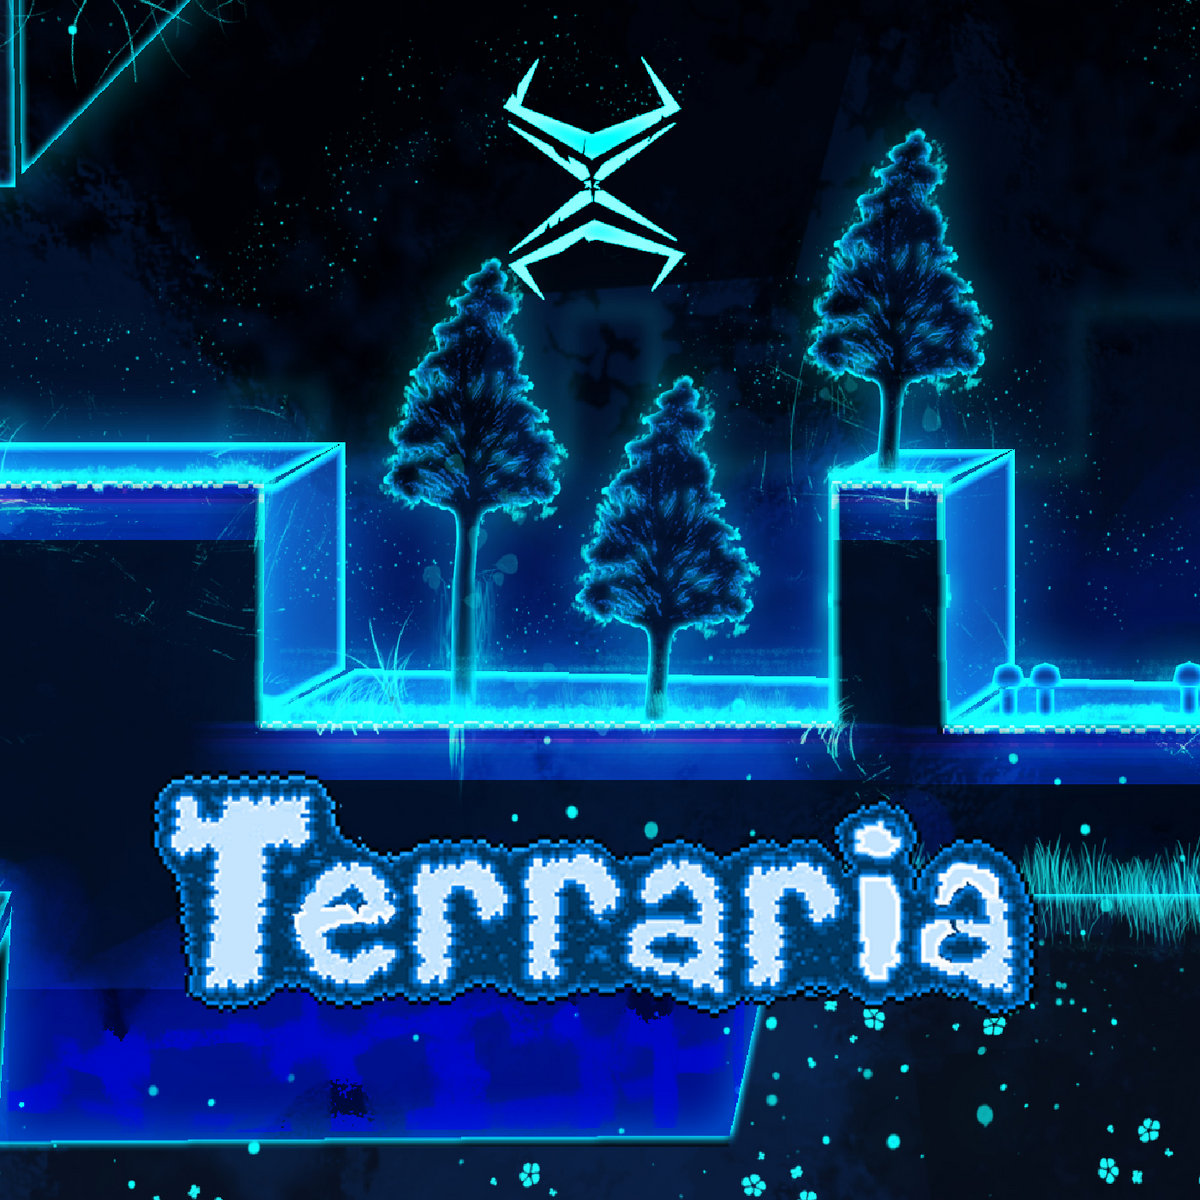 Underground Theme Remix Terraria 1 4 Zaxiade This music is filled with drums and bass in this. zaxiade bandcamp